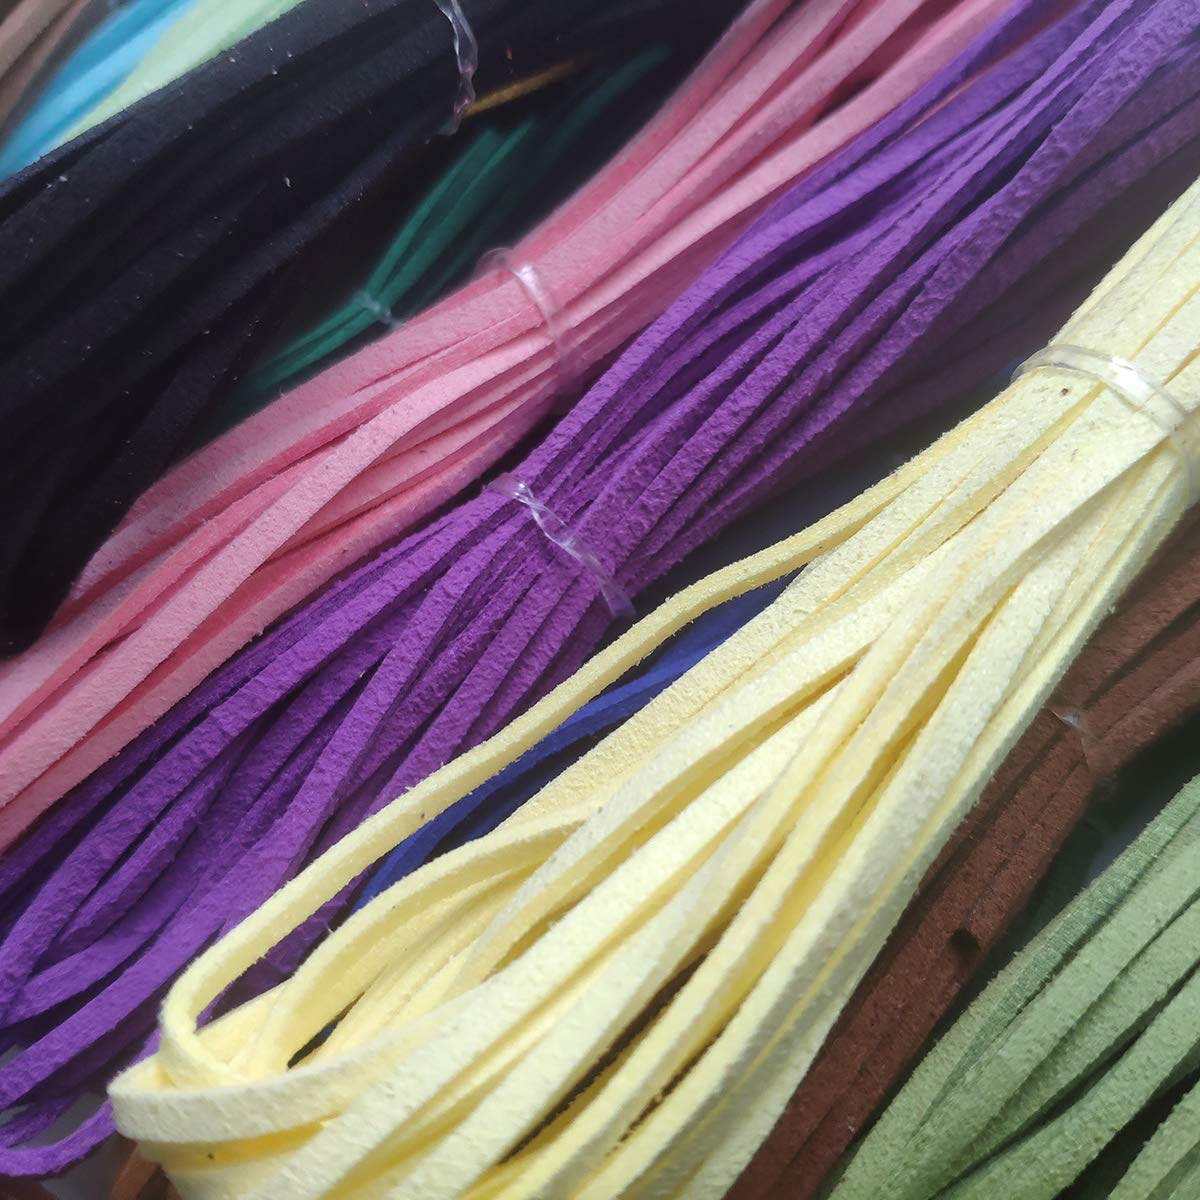 Misscrafts 3mm Flat Leather Beading Cords Faux Suede Cord Threads Multicolor 5.4 Yard Lace Velvet Beading String Jewelry Making Supply